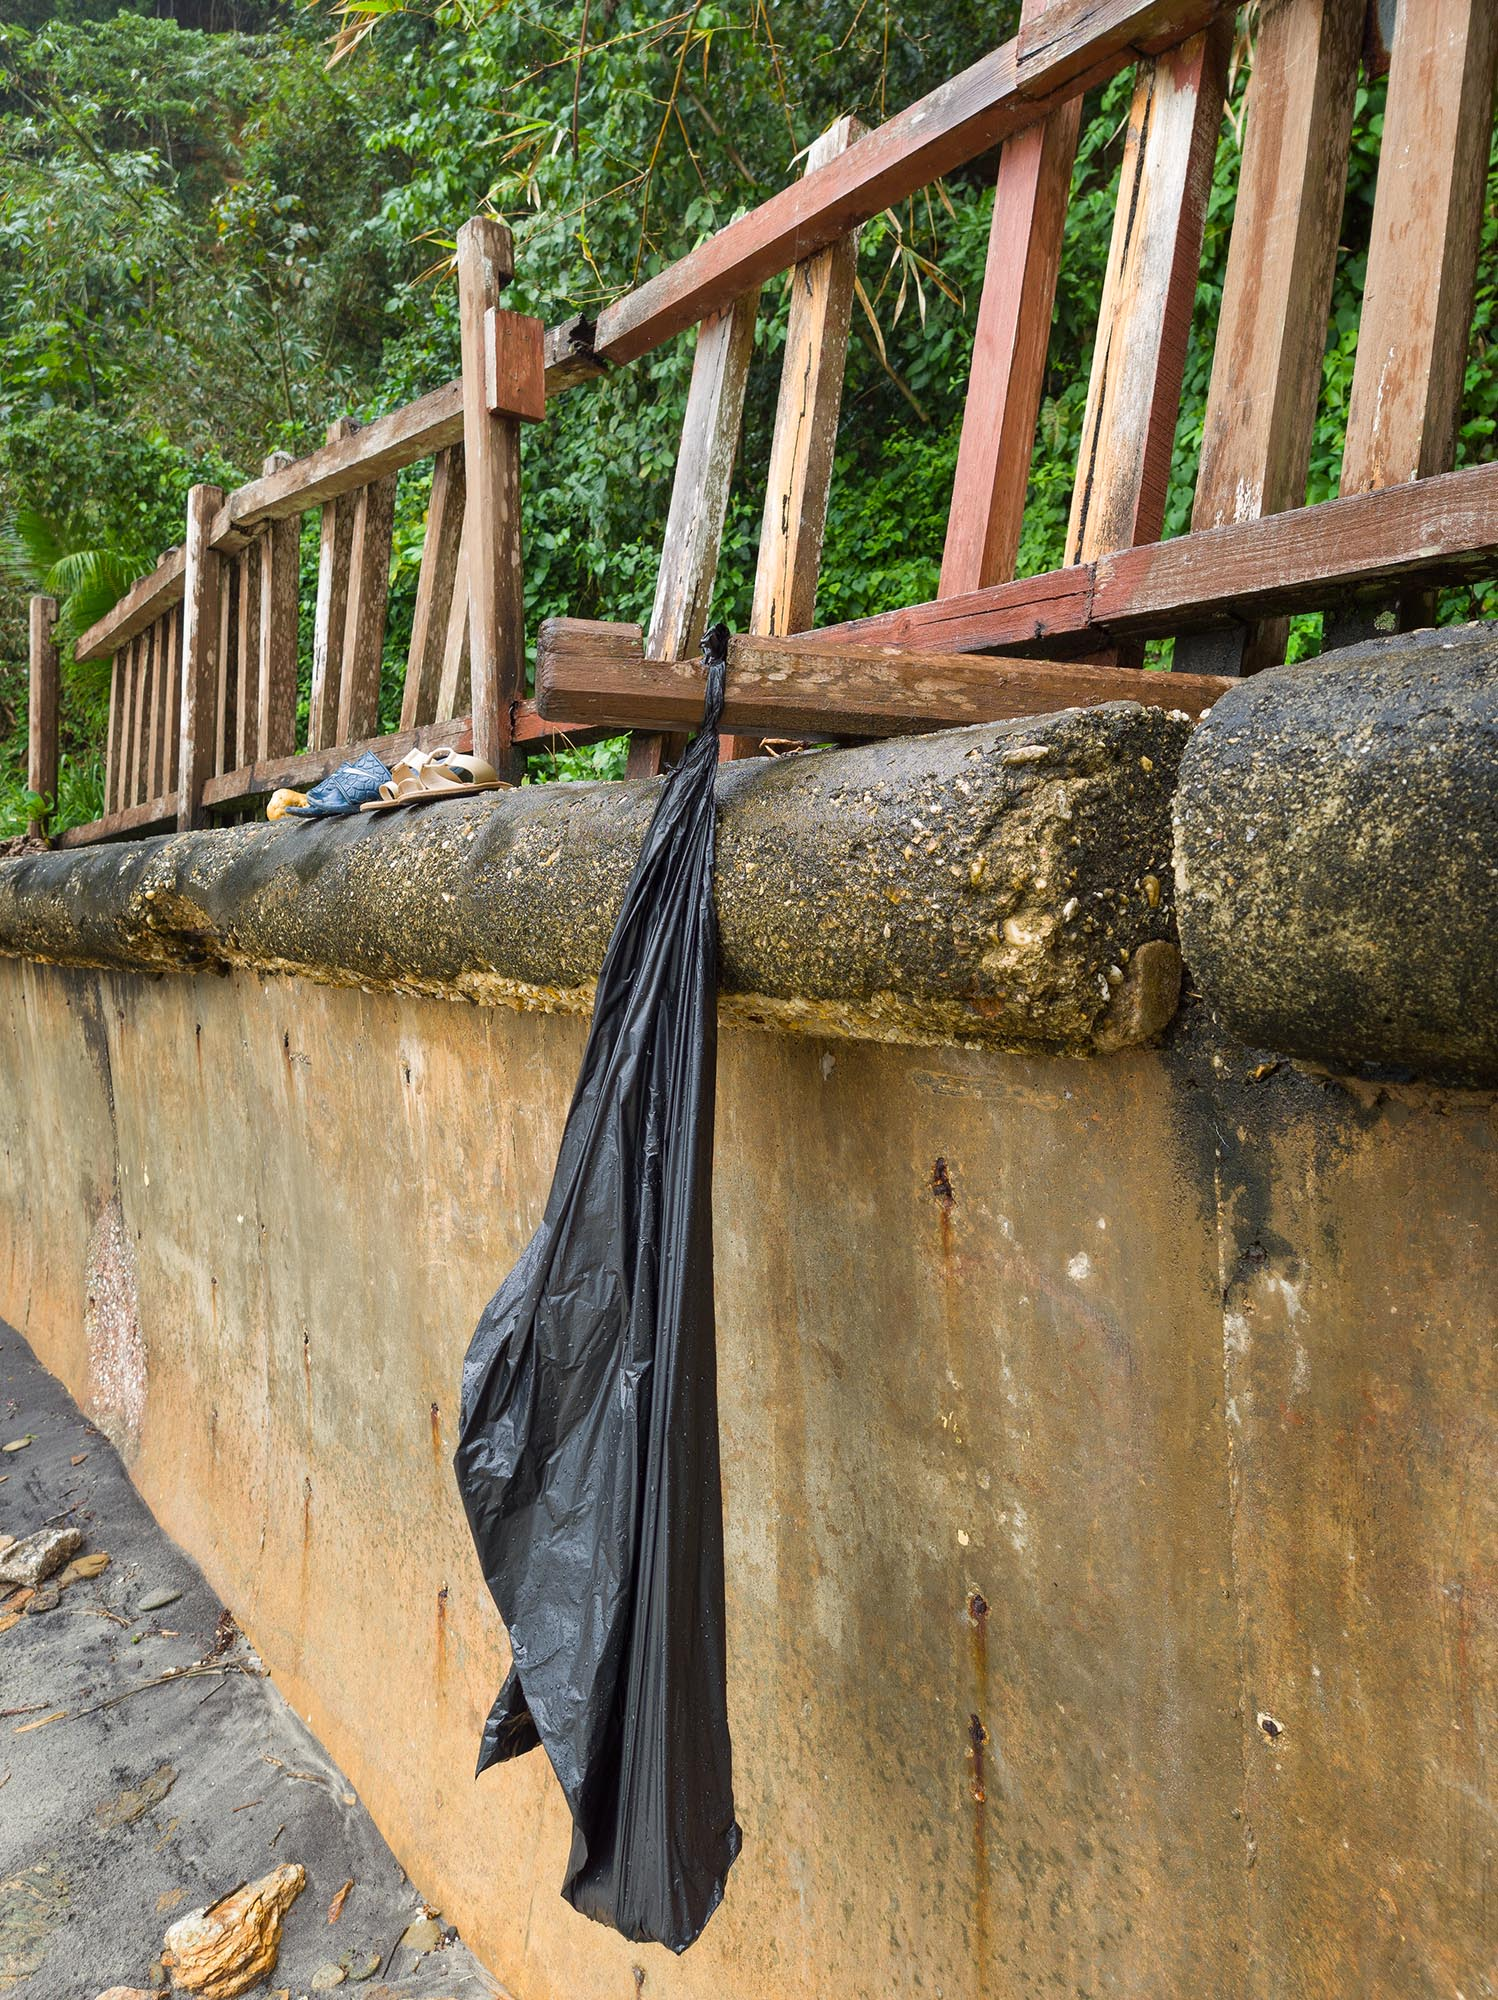 The collapse of the safety features of the beach are now institutionalised, as workers responsible for placing garbage bags for visitor use now hang them from bits of collapsed railing. Photo by Mark Lyndersay.